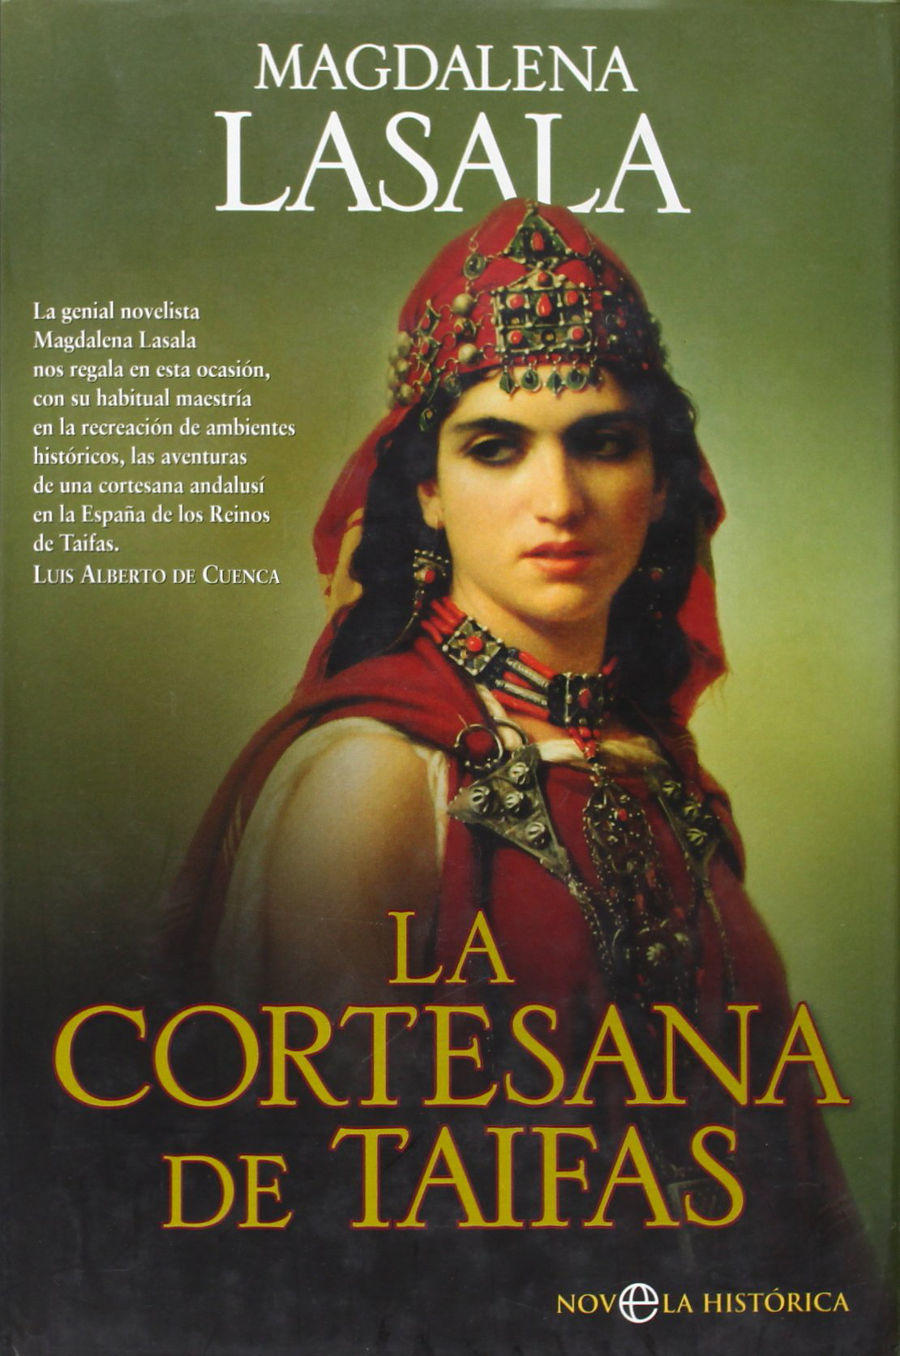 La cortesana de taifas Book Cover